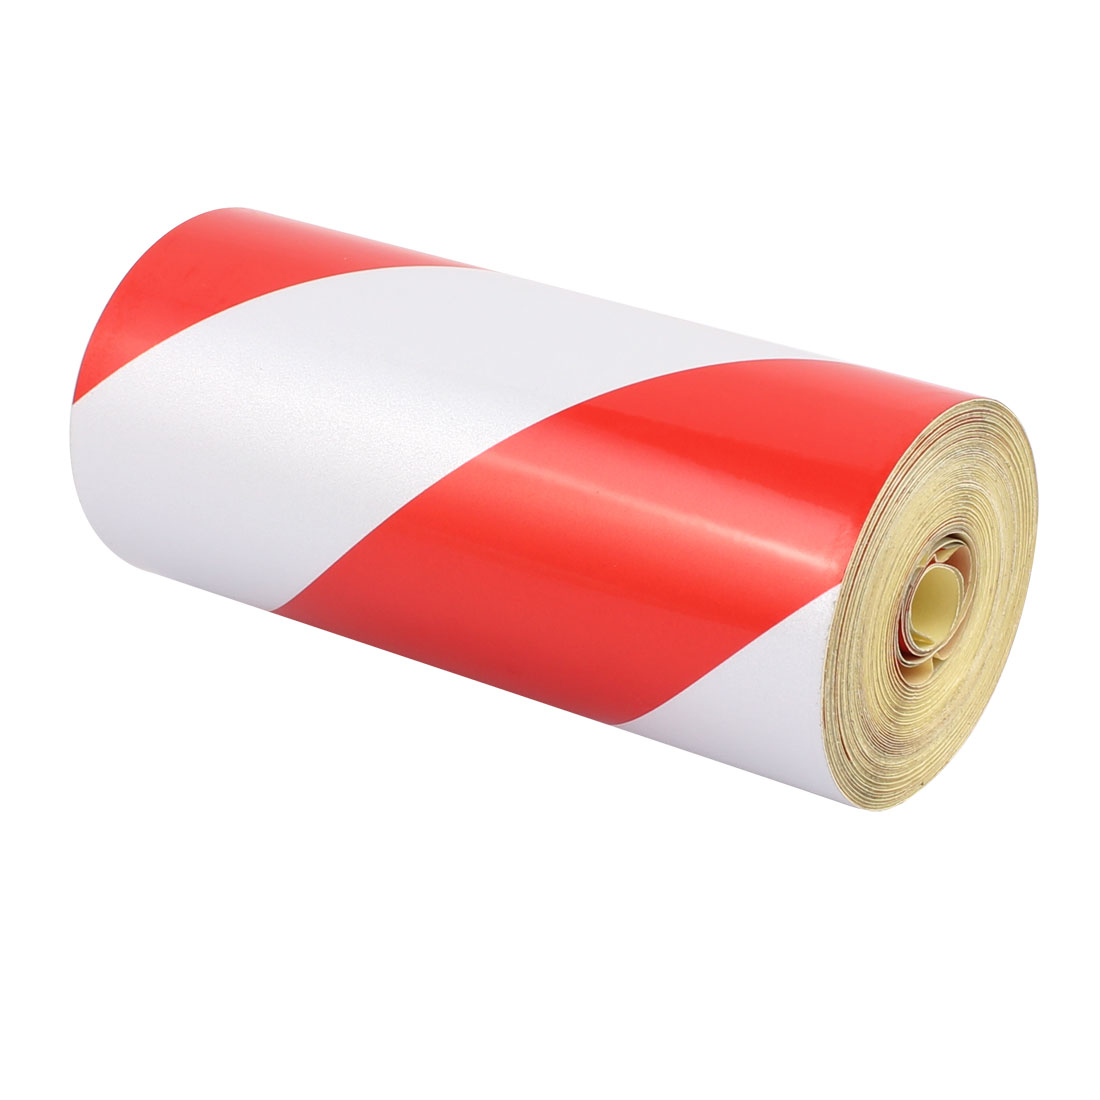 15cm x 15M Single Sided Adhesive Reflective  Warning Tape Tilt Red White - image 3 de 3